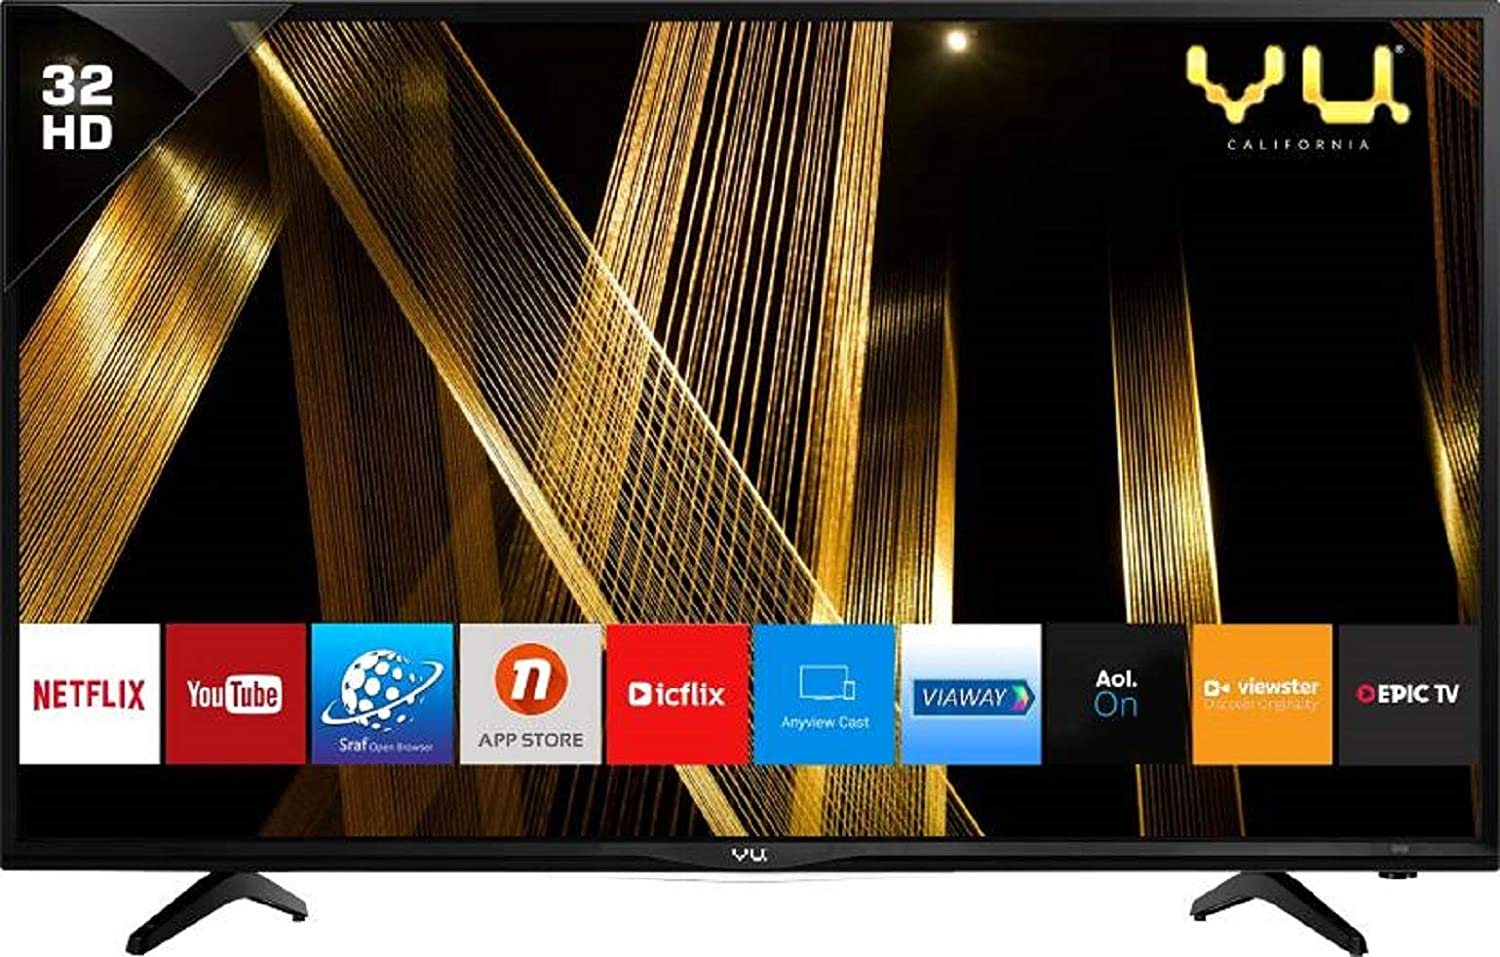 vu-hd-ready-smart-led-tv-32-inches